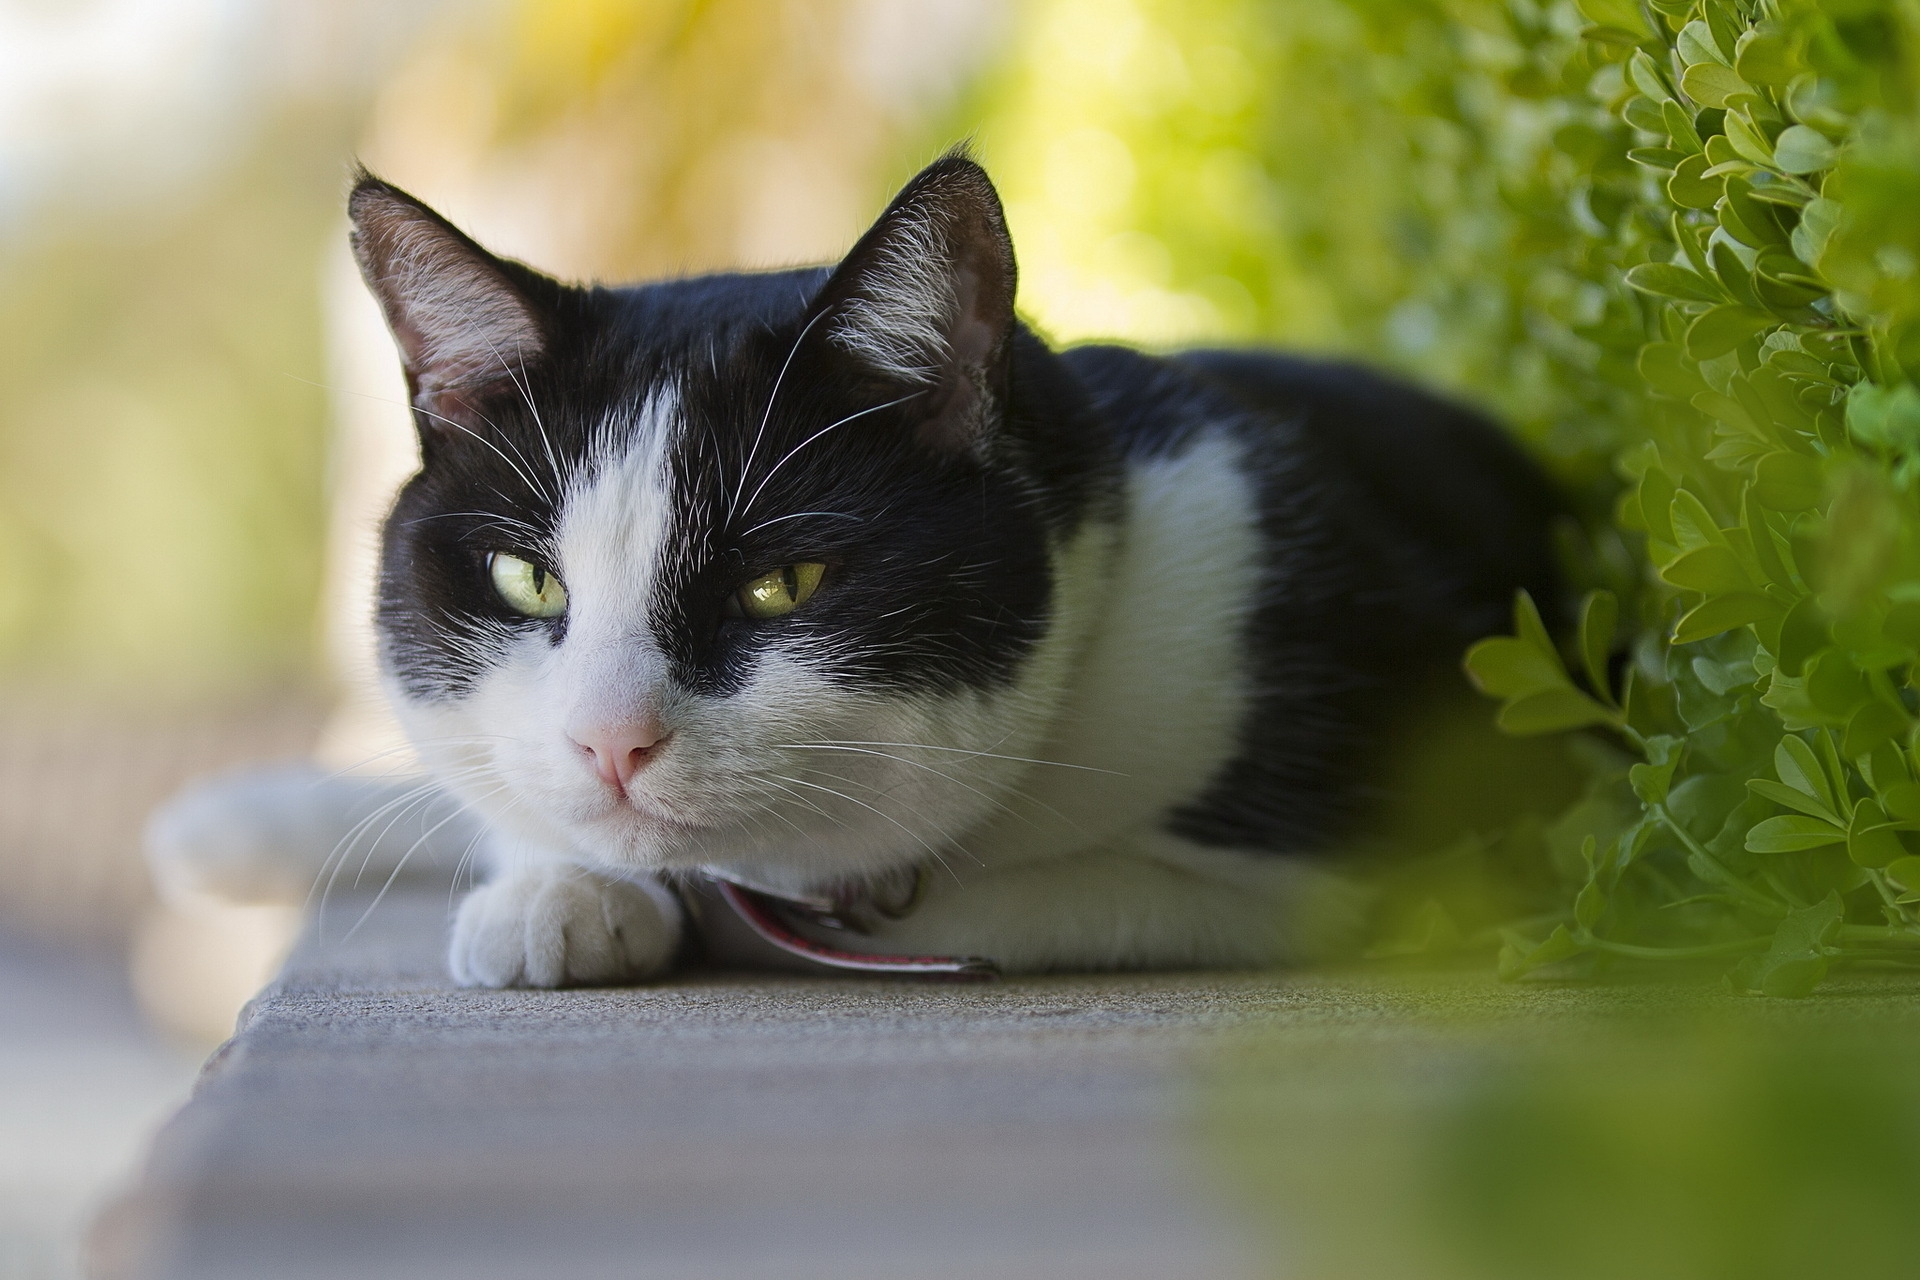 150582 download wallpaper Animals, Cat, Muzzle, Sight, Opinion, To Lie Down, Lie screensavers and pictures for free